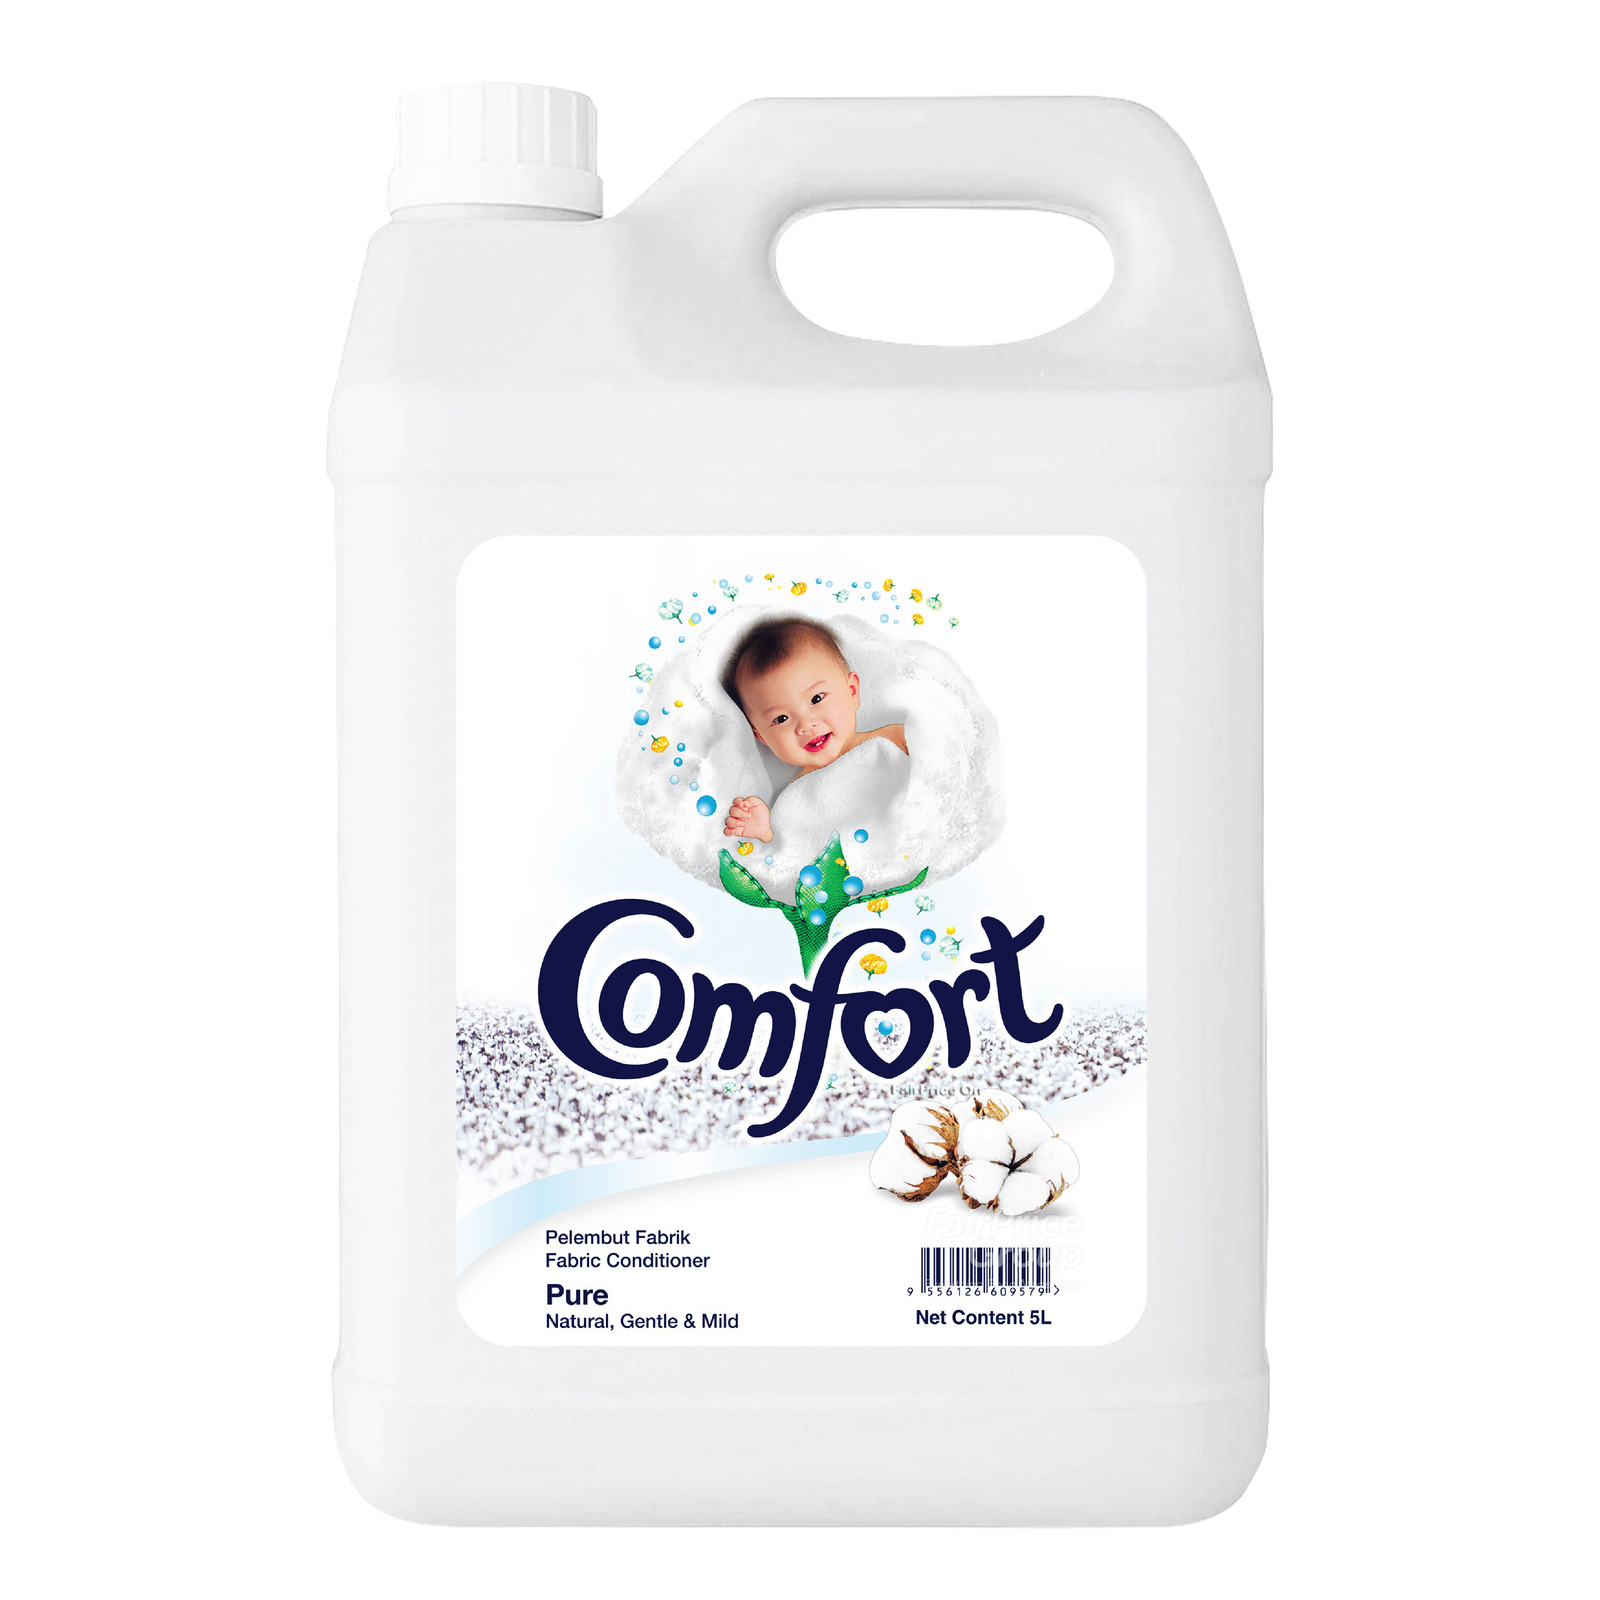 Comfort Fabric Conditioner - Pure (Natural)